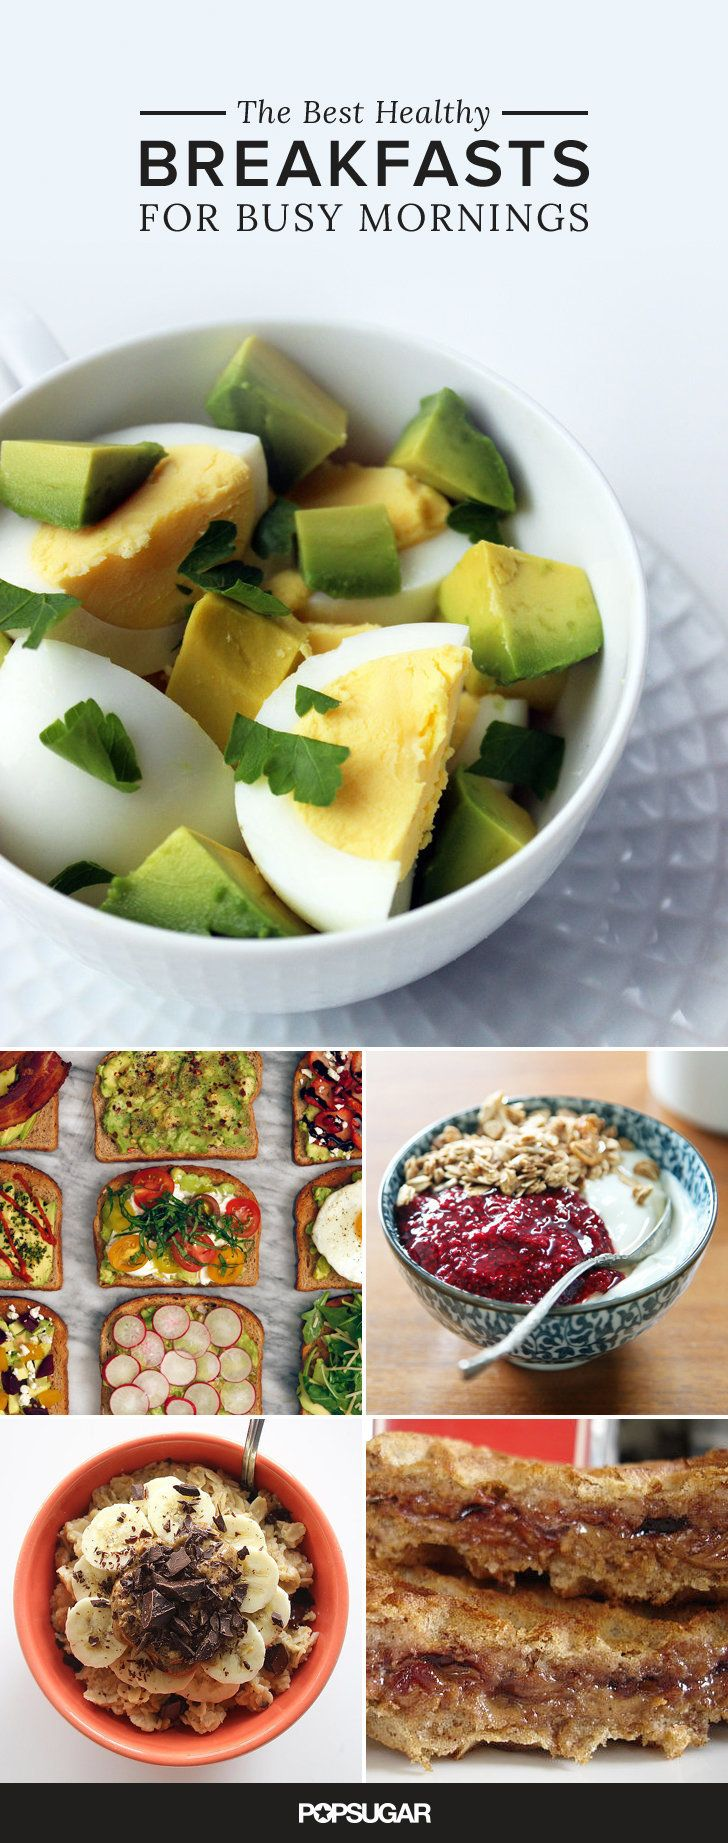 Your mornings just got easier with these delicious breakfast options!